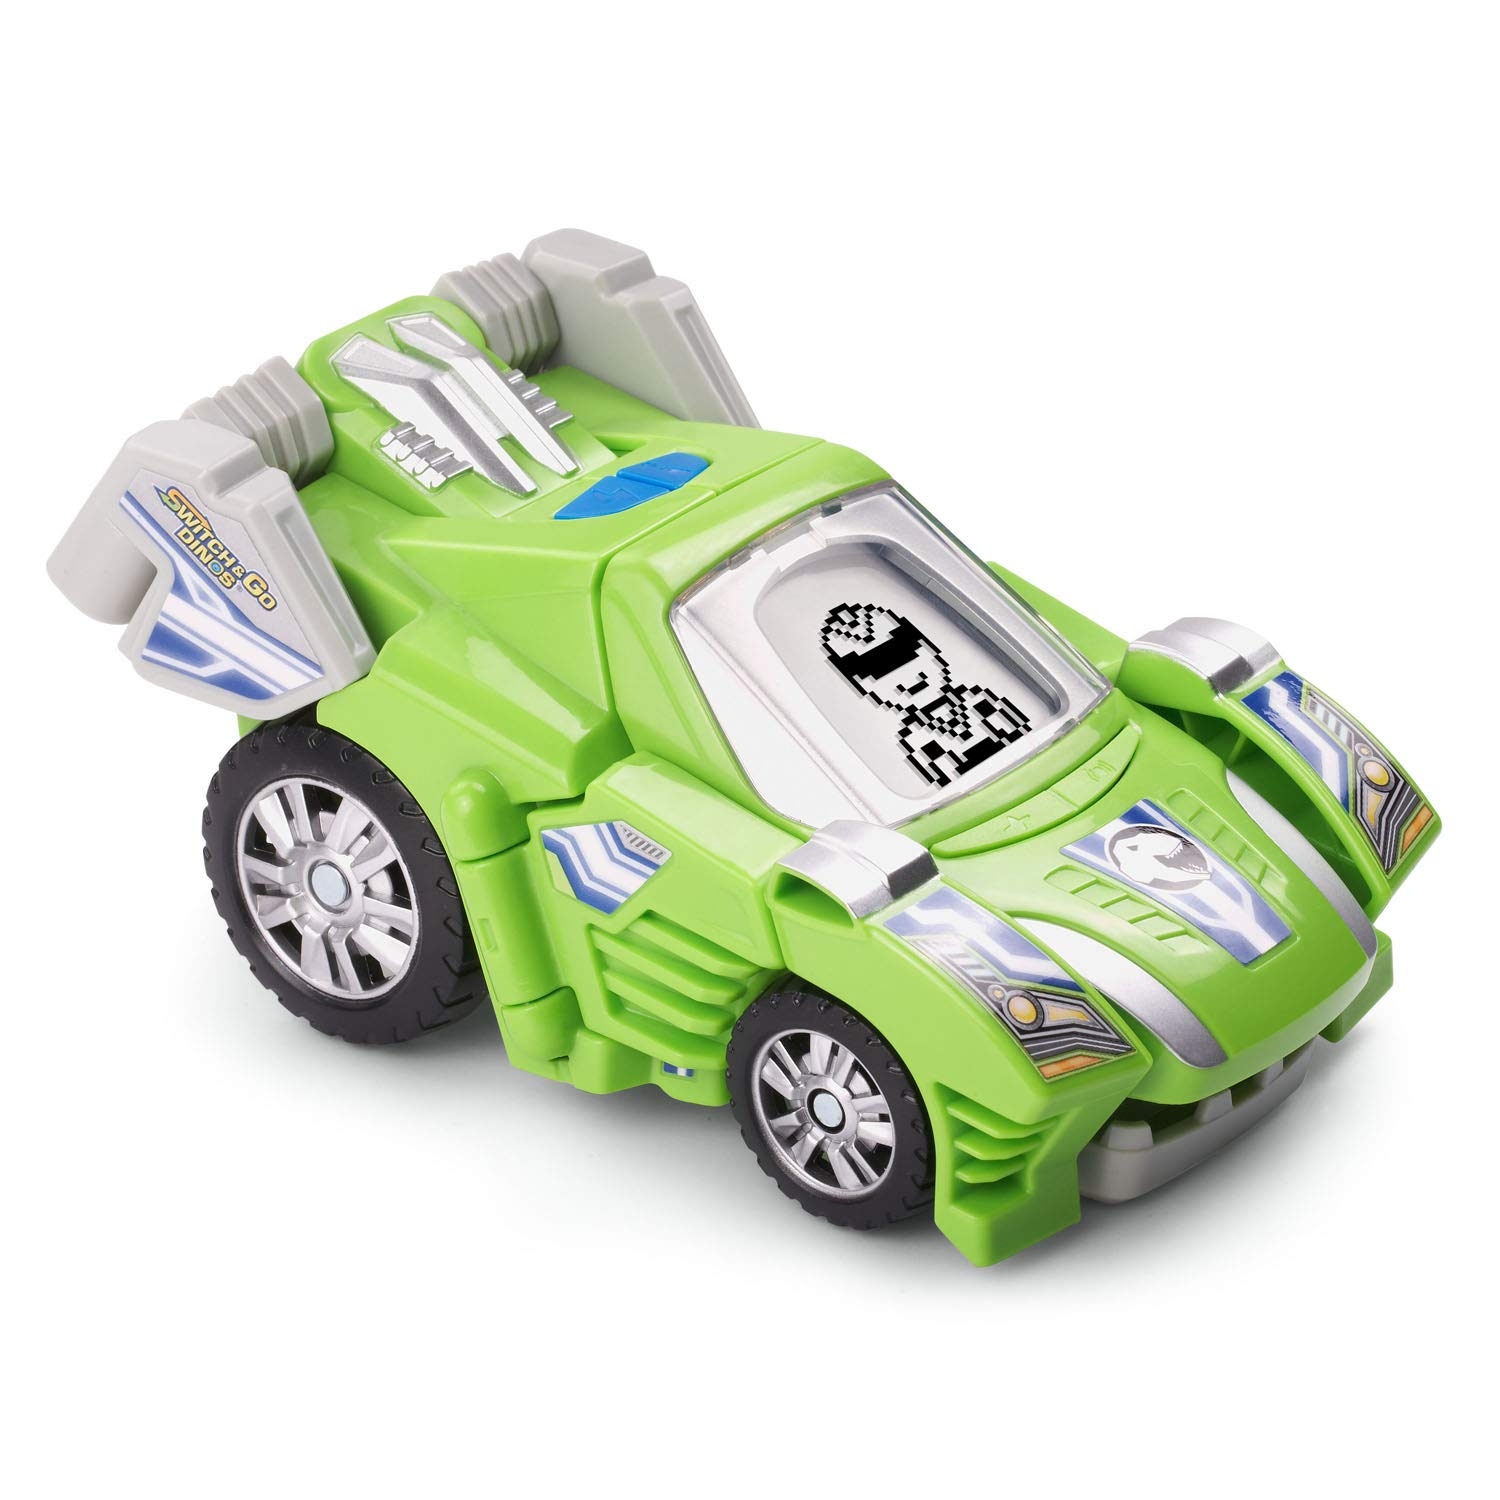 V Tech Switch and Go Dinos - Silver the T-Rex Green by VTech (Image #3)